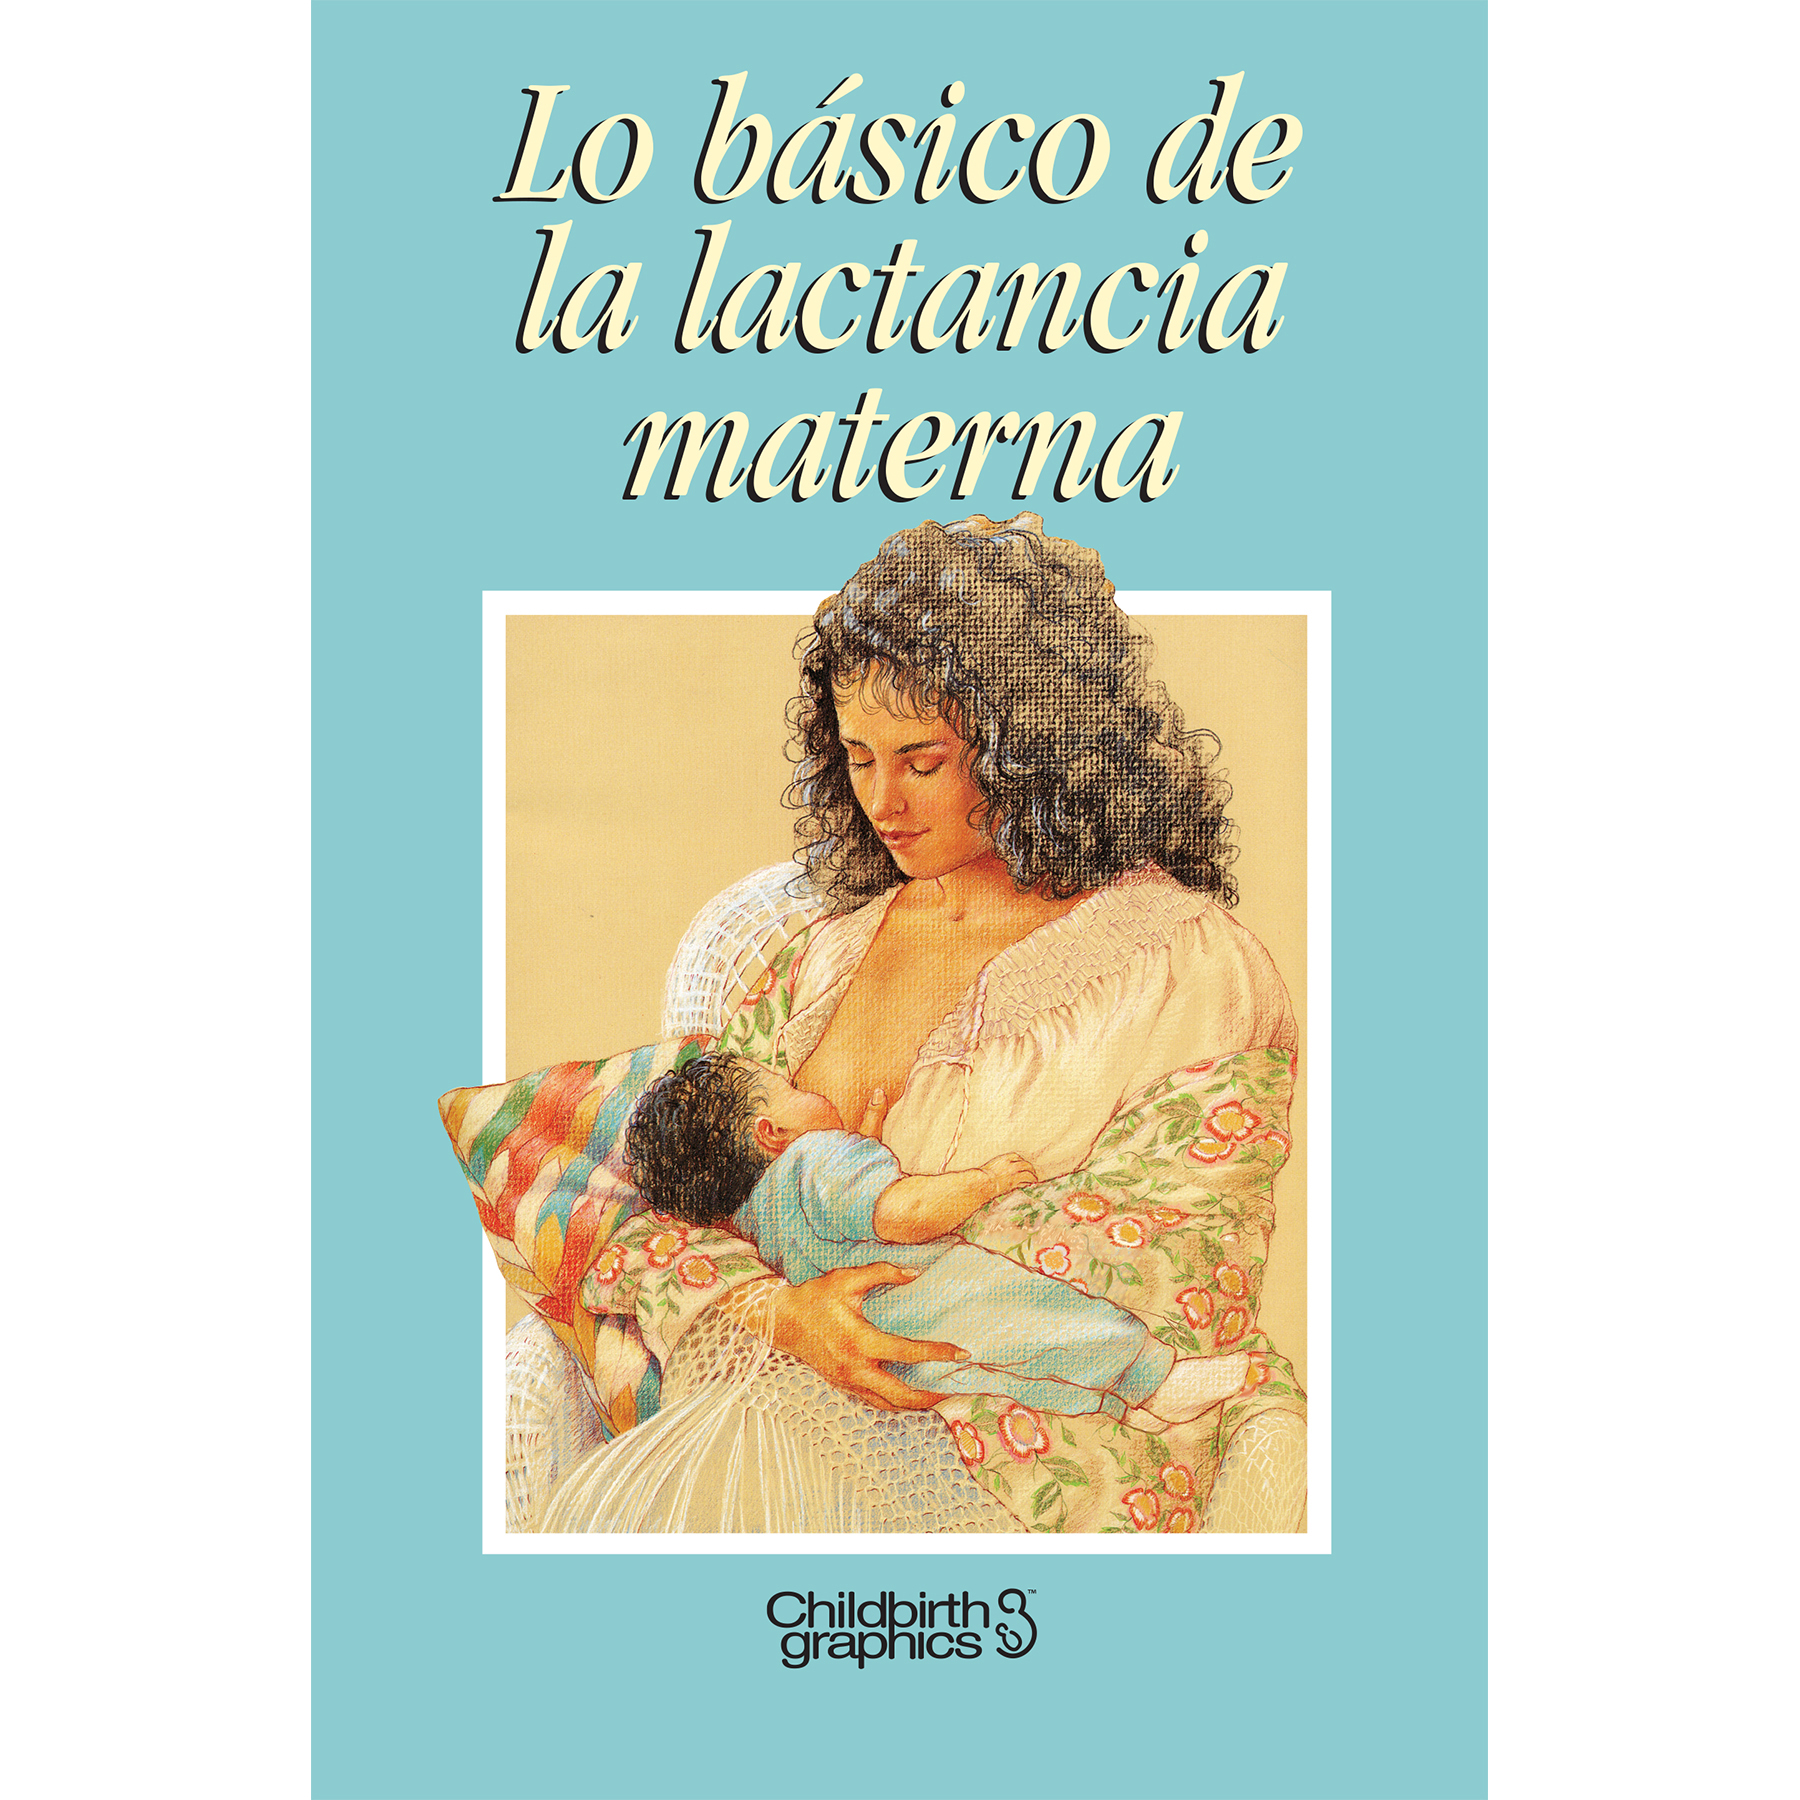 Breastfeeding Basics 16-page illustrated booklet cover image shown Spanish, Childbirth Graphics, 38603